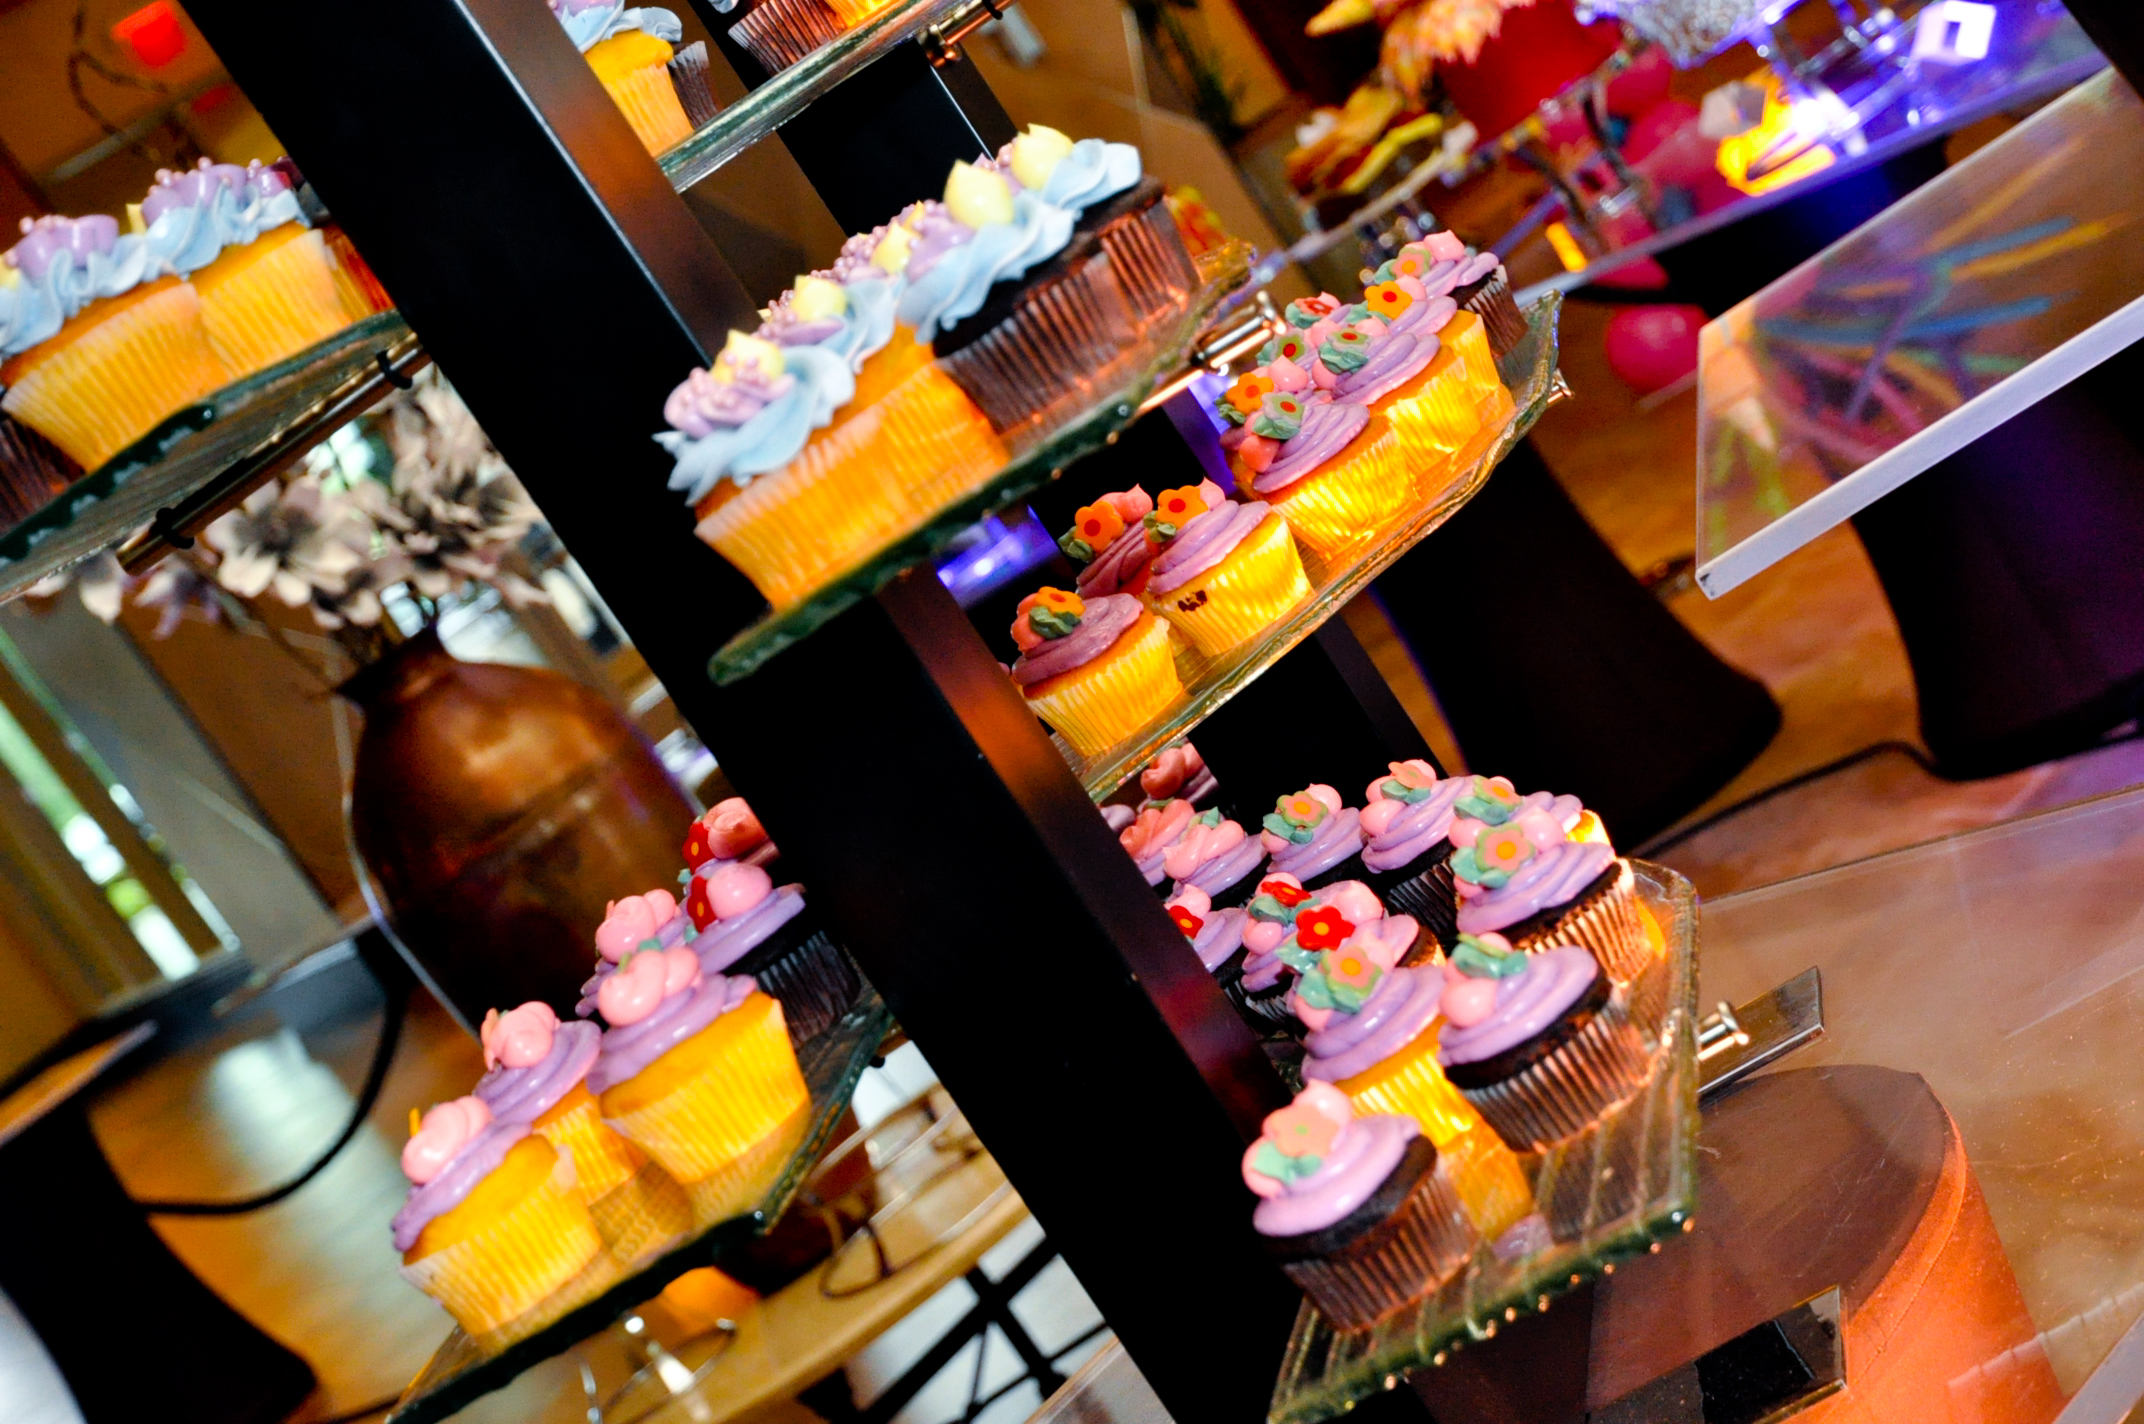 Hilton Orlando Bonnet Creek Hosting Cupcake Lovers Weekend, June 14 & 15, 2013